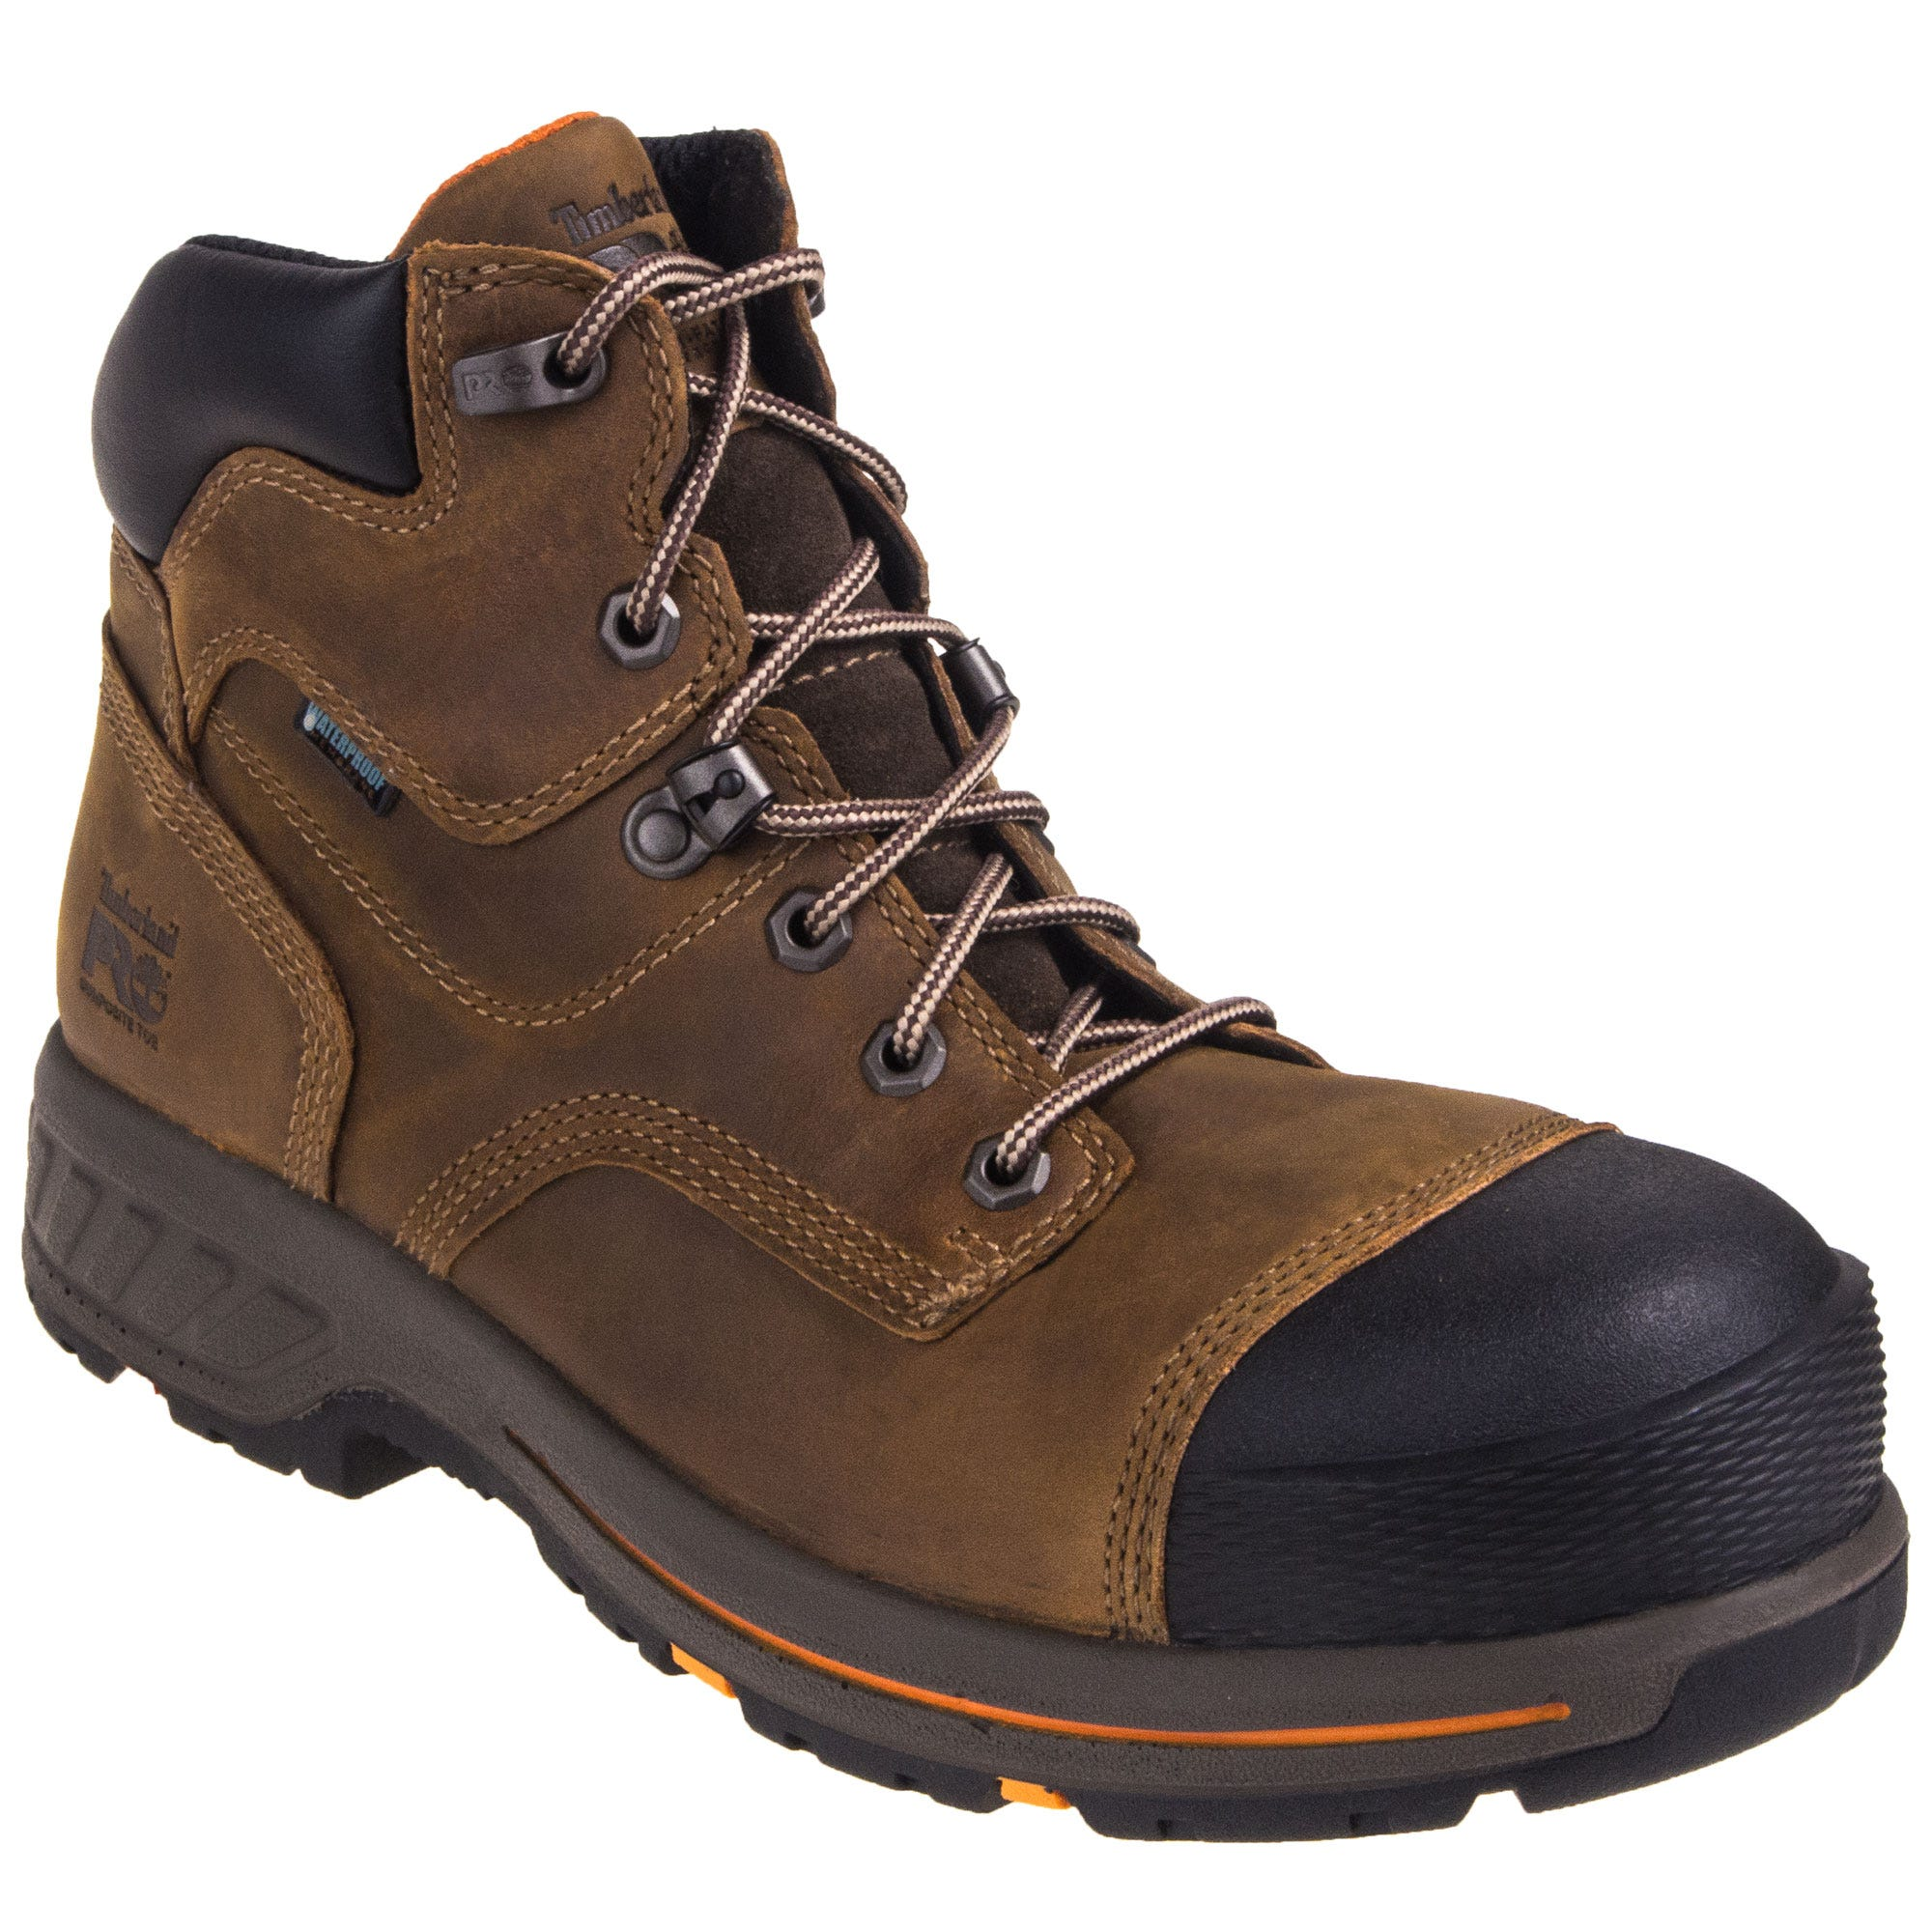 Timberland Pro Men's Boots   MenStyle USA